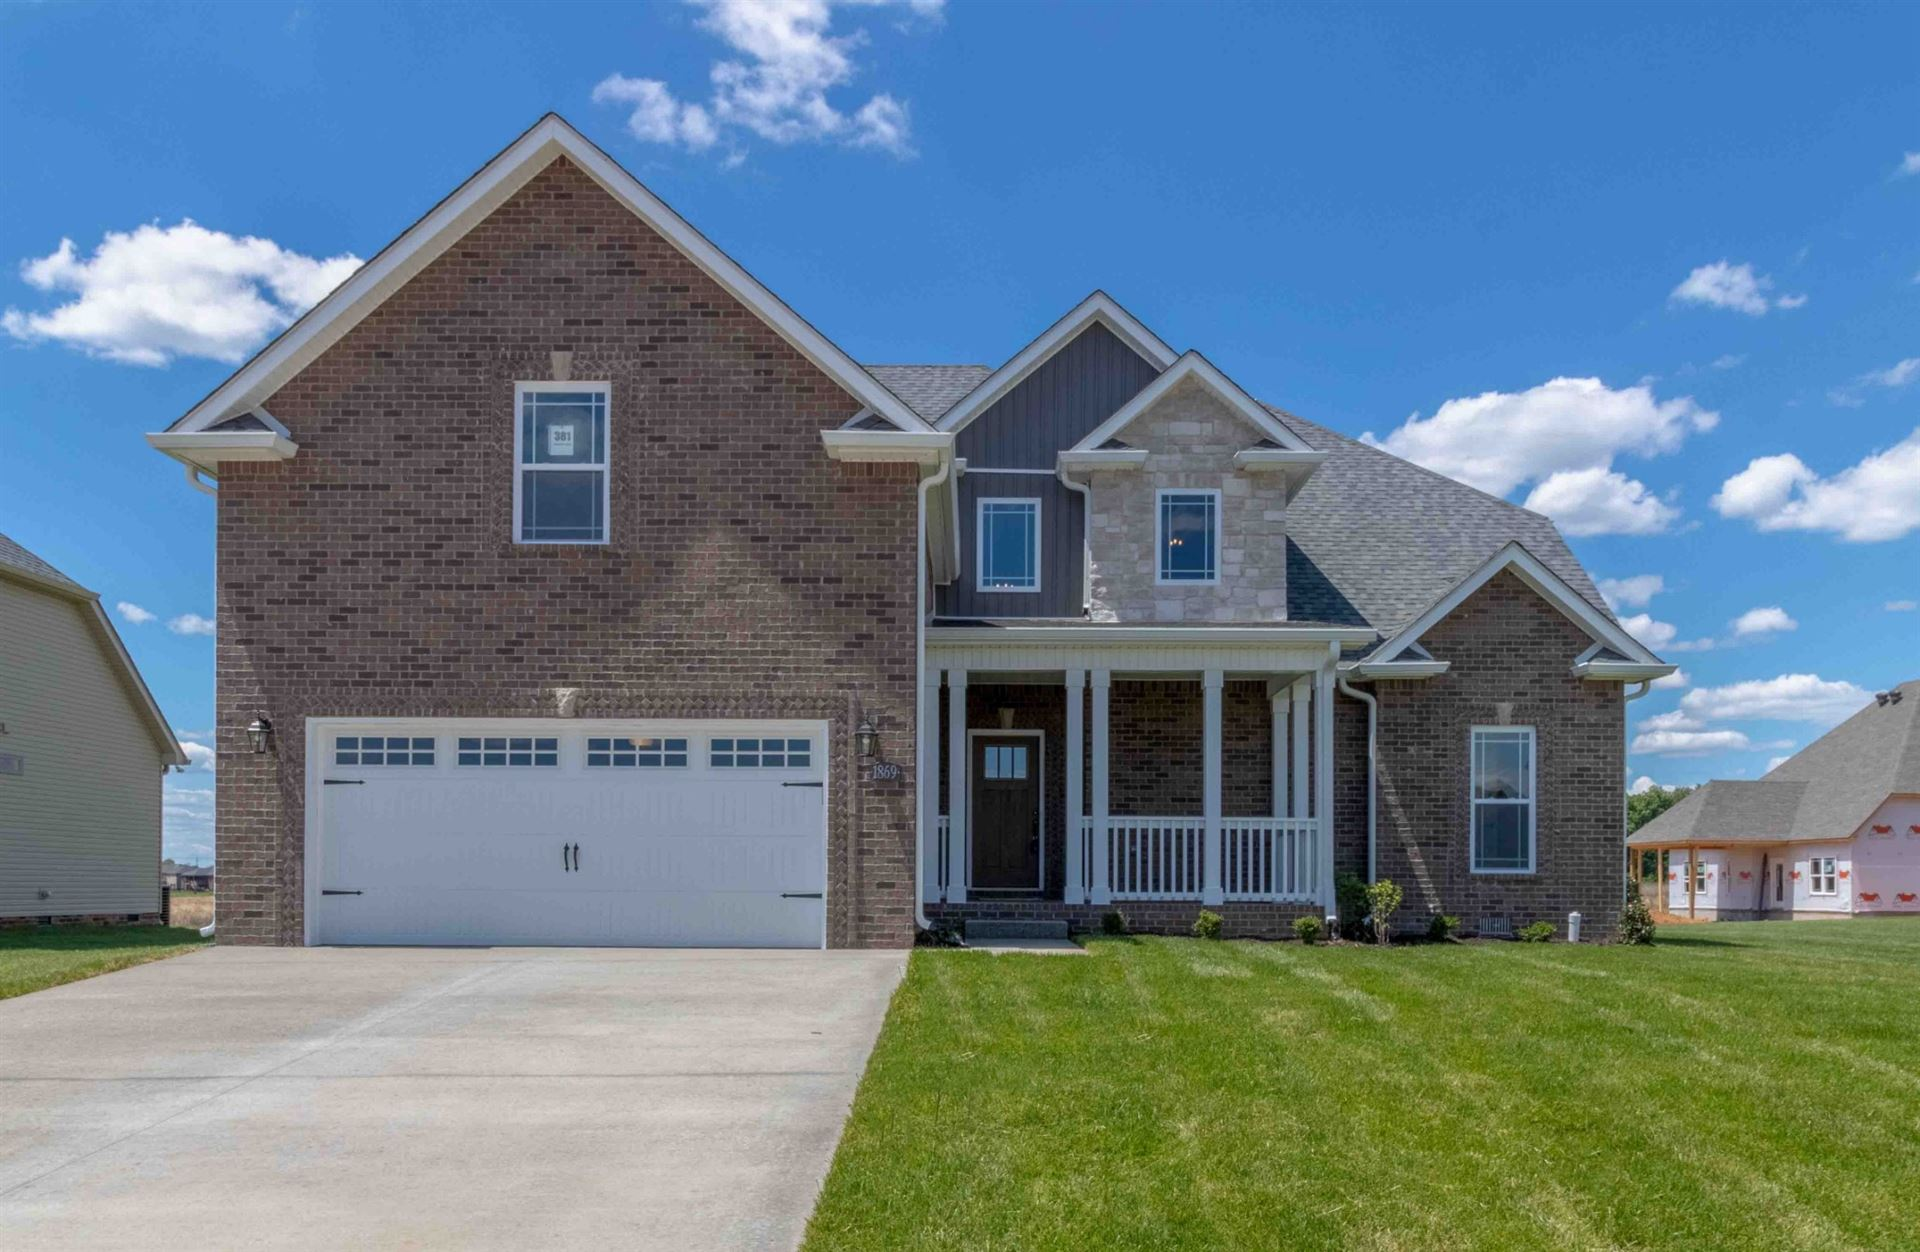 381 Wellington Fields, Clarksville, TN 37043 - MLS#: 2220706